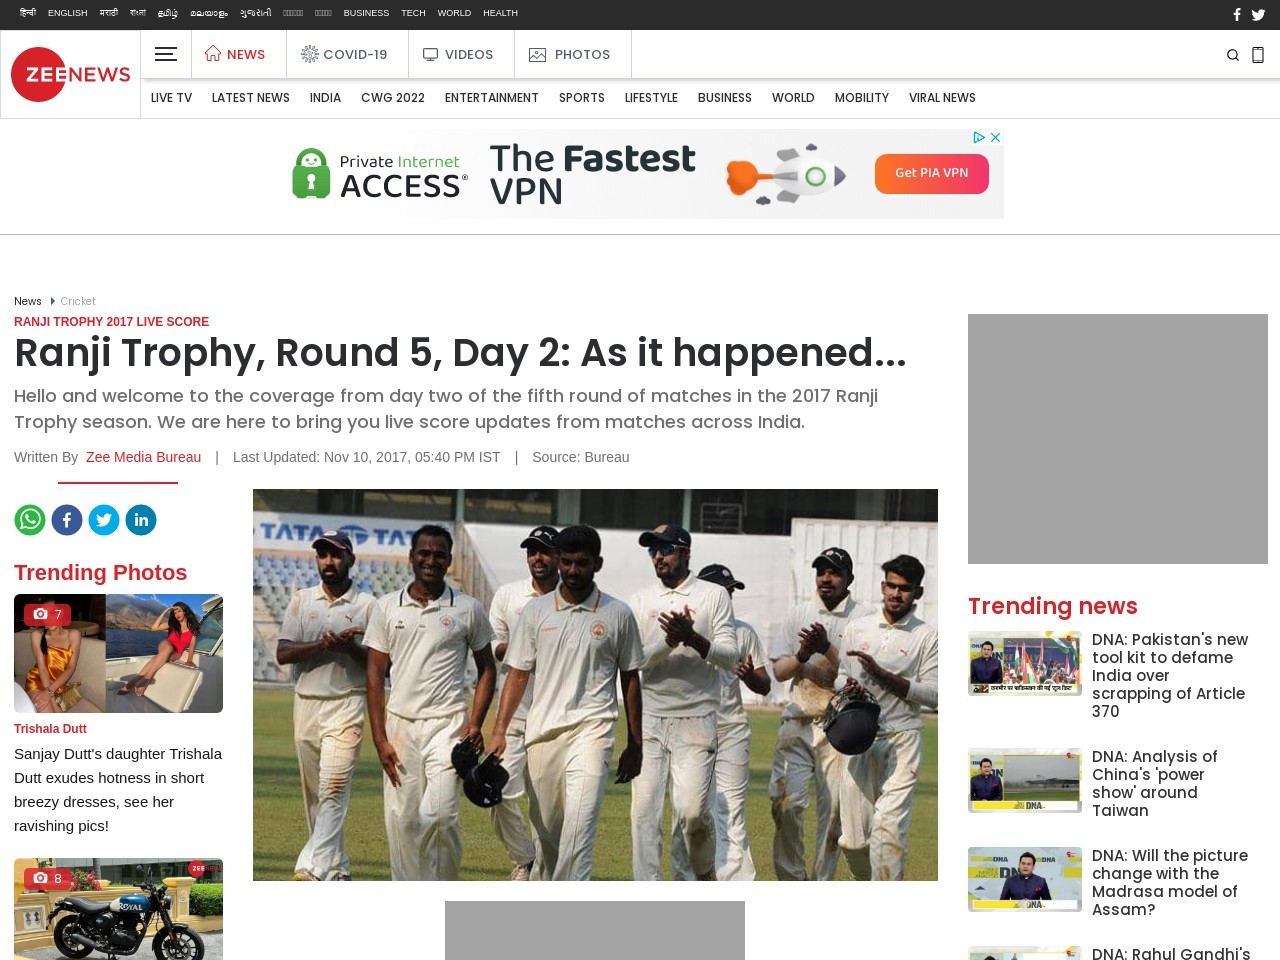 Ranji Trophy, Round 5, Day 2: As it happened…